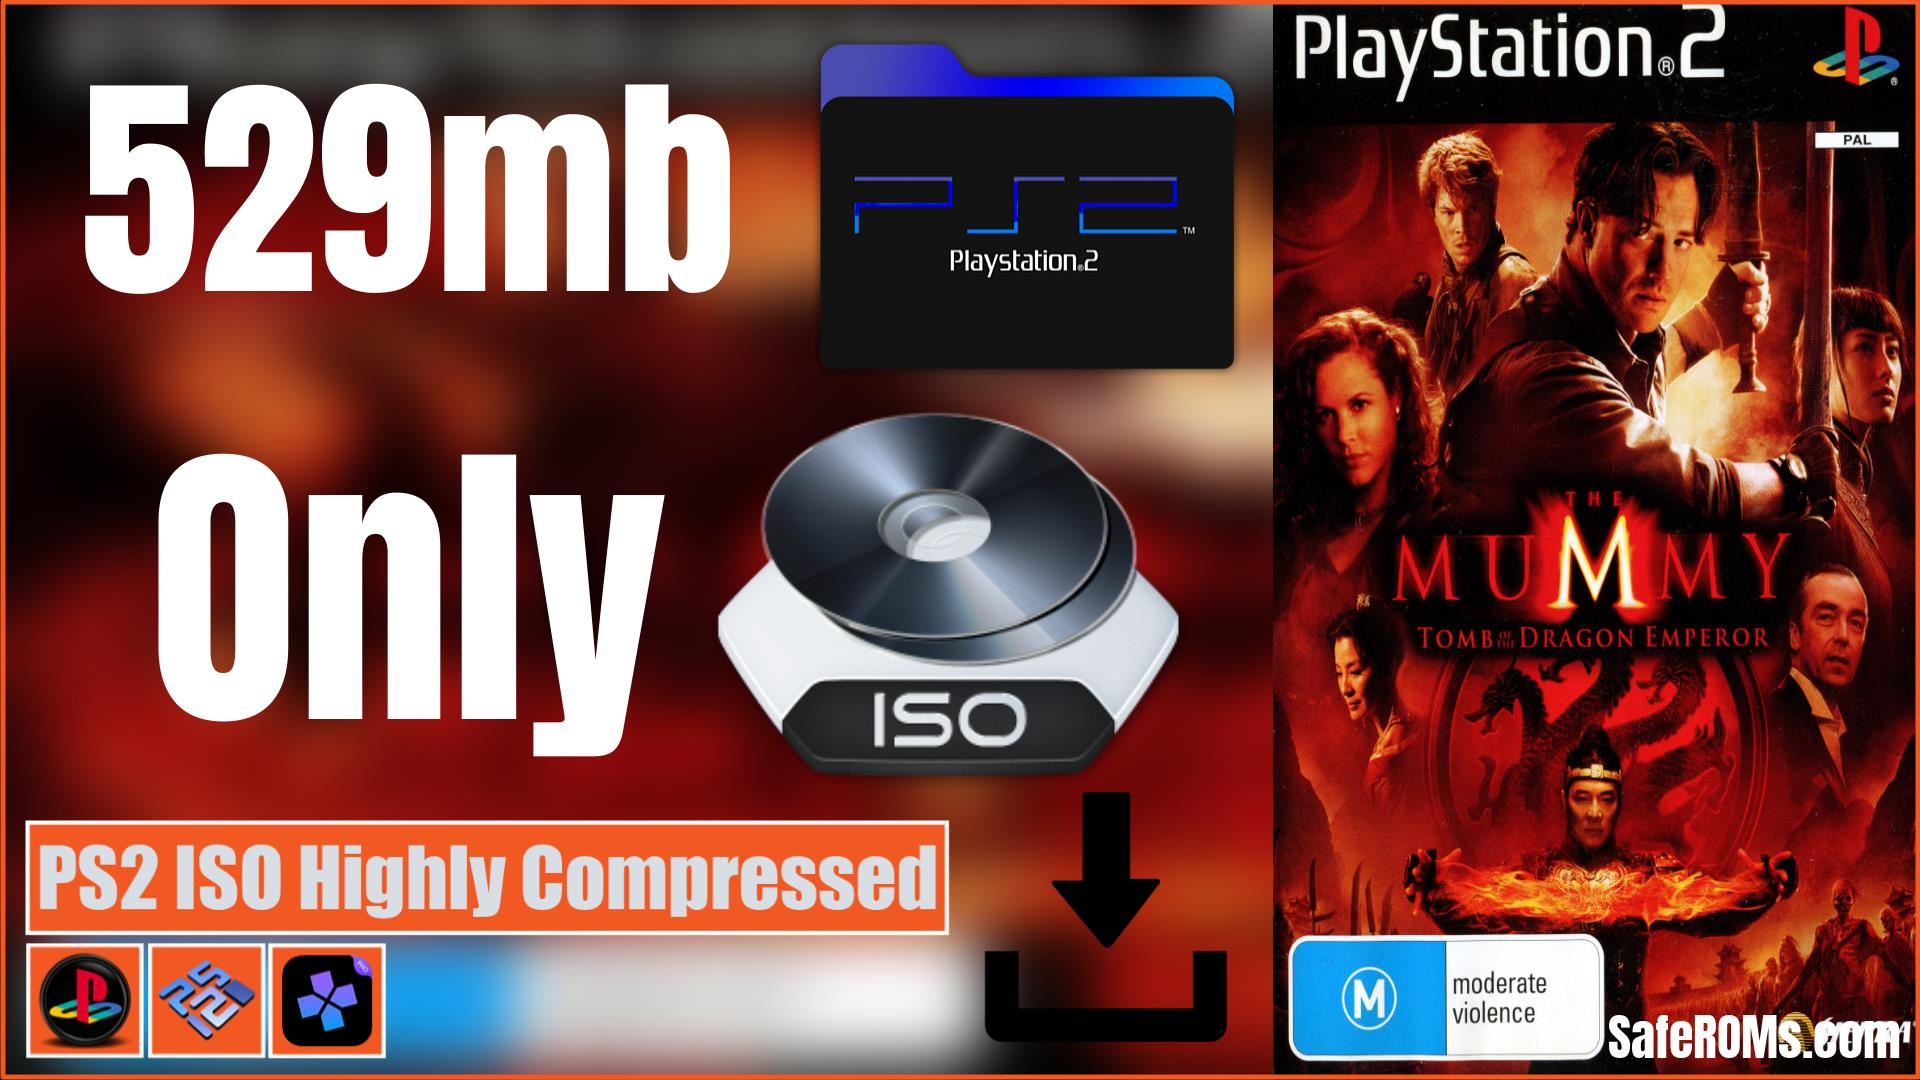 The Mummy - Tomb of the Dragon Emperor PS2 ISO Highly Compressed Download